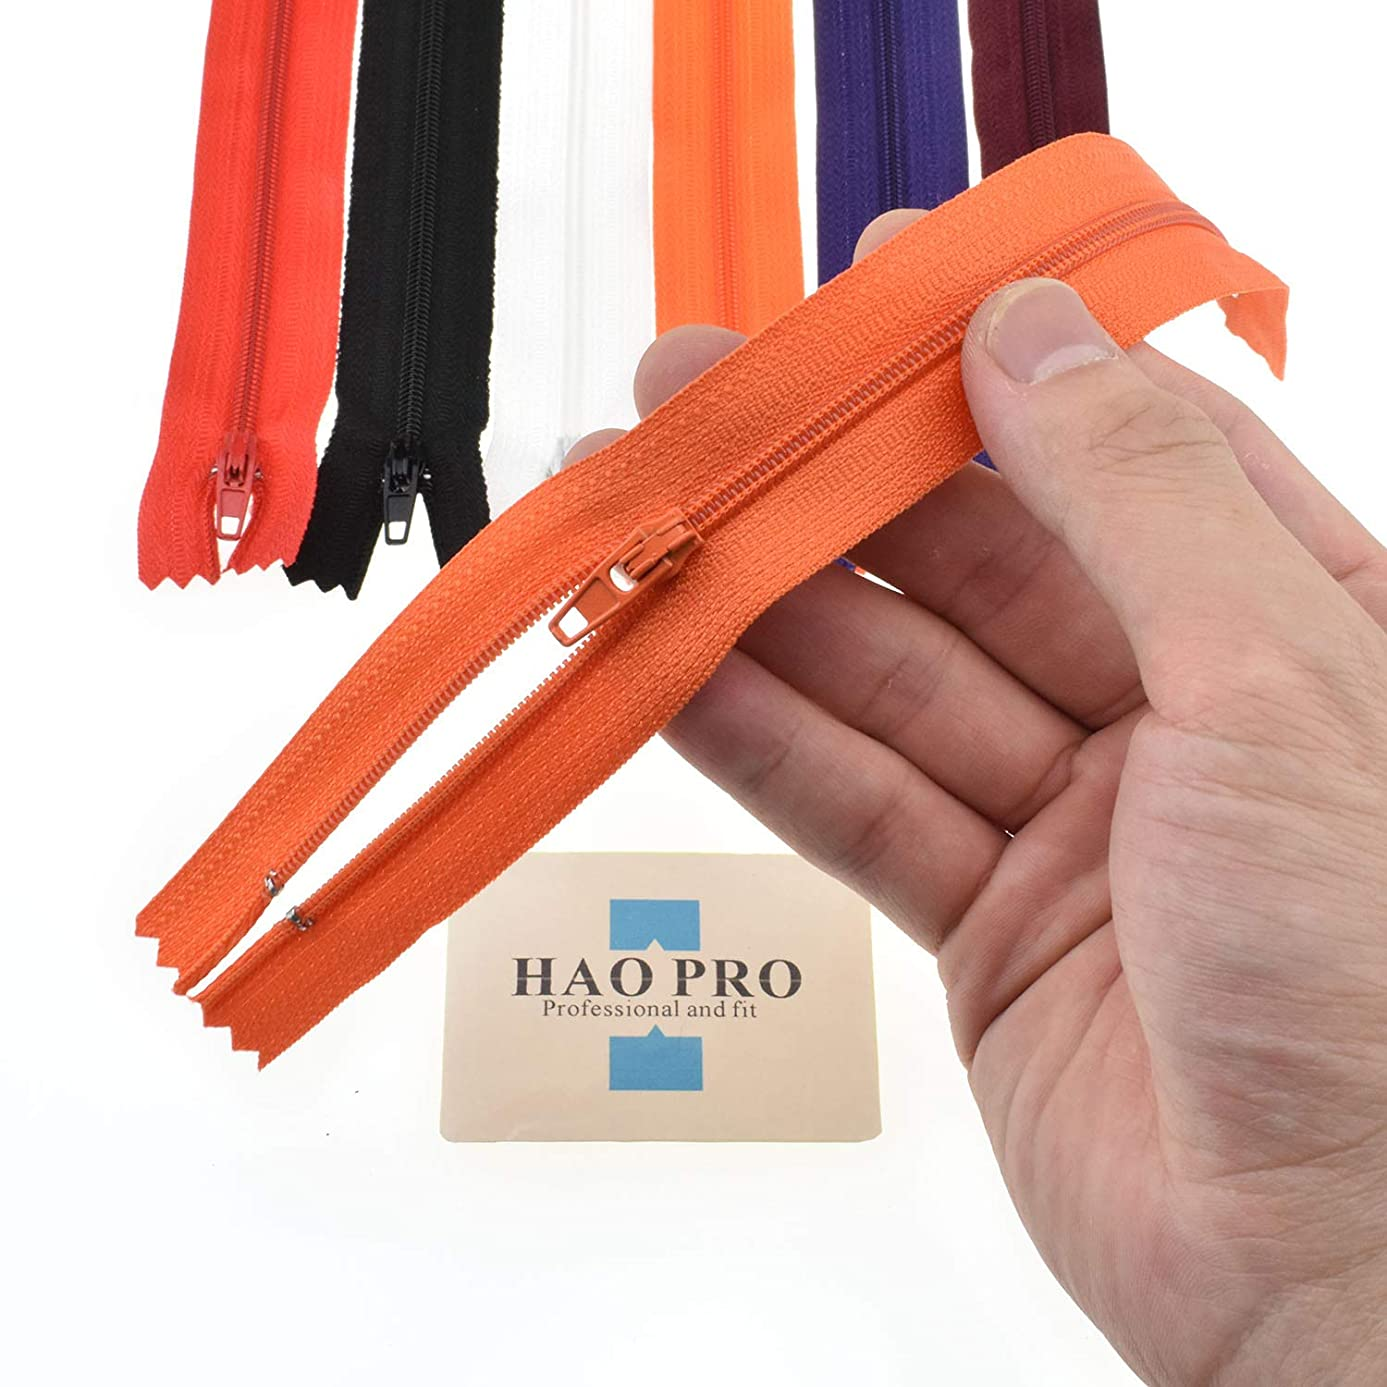 """SGH PRO True 9"""" Zippers #3 True 9"""" Teeth Length 10.8"""" Tape Length Nylon Coil Zipper 18 Pack 6 Colors Open Close Smooth Stress Tolerance Solid Zipper Pulls Stoppers for Bags Purses Crafting Sewing"""